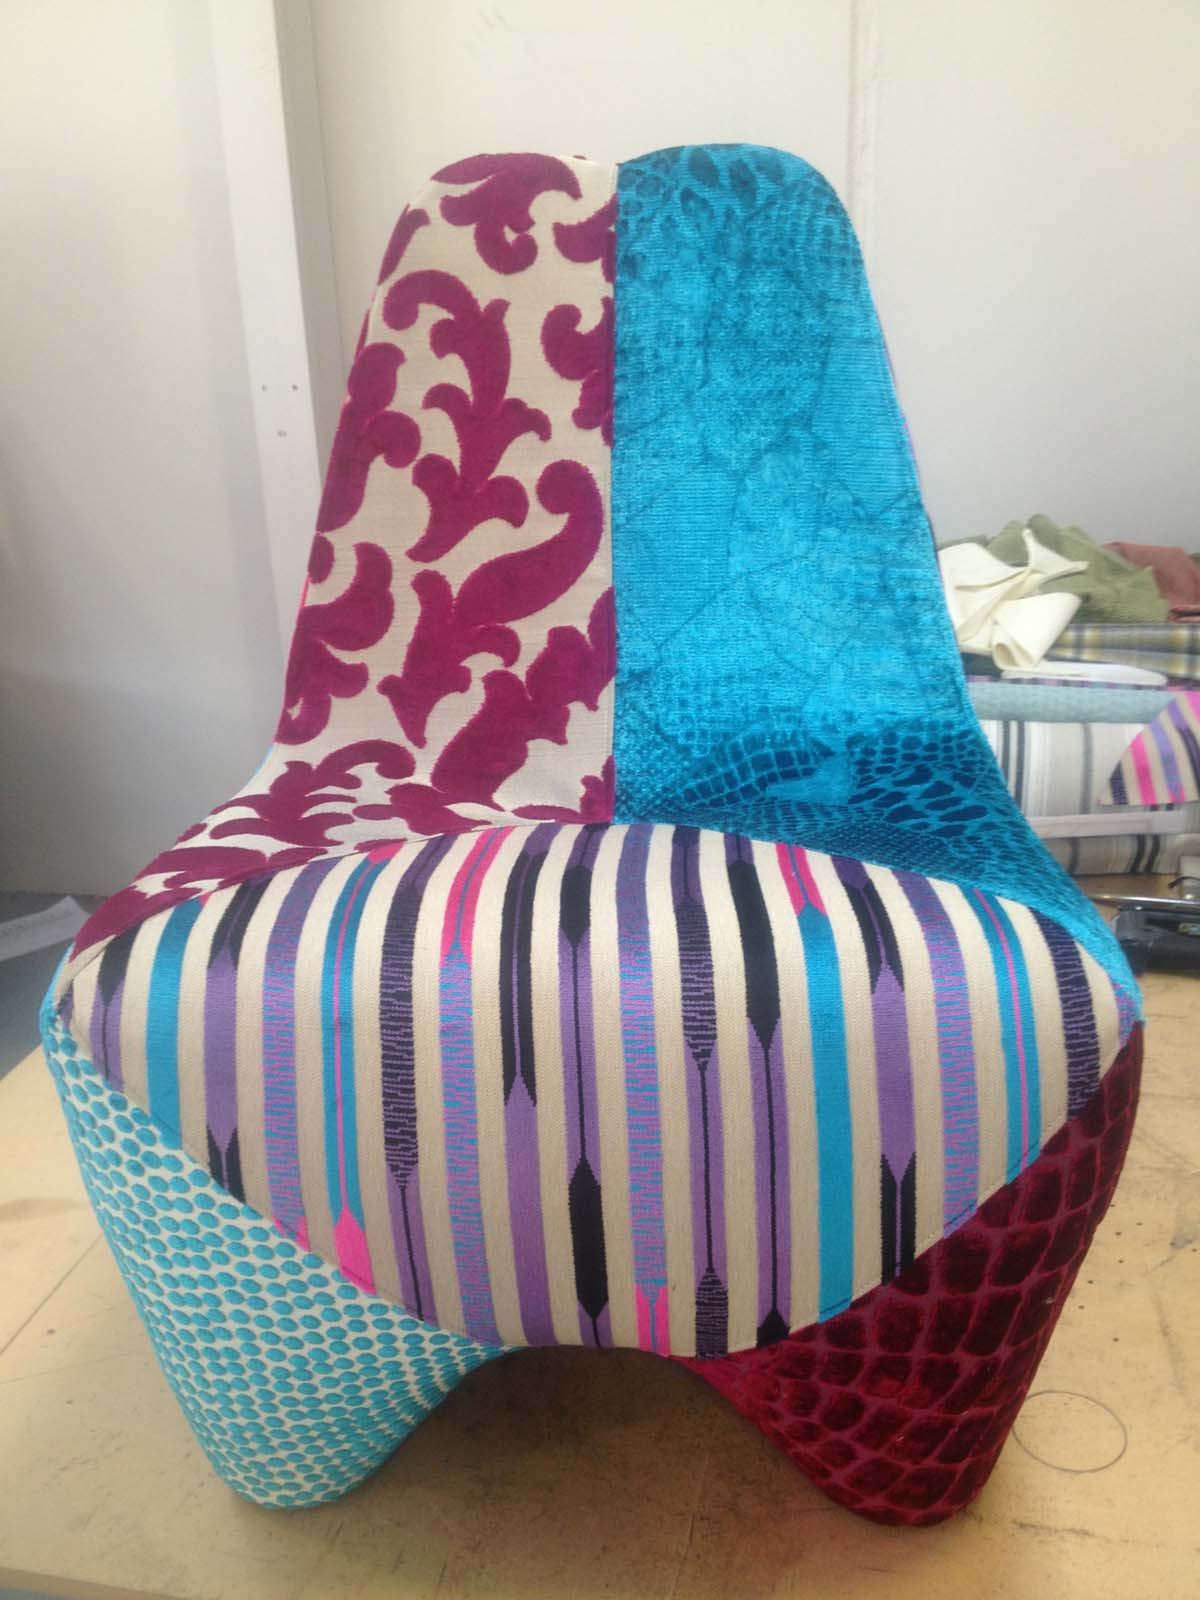 Using scraps of fabric to recover this Italian style chair for an Aspen Grove client